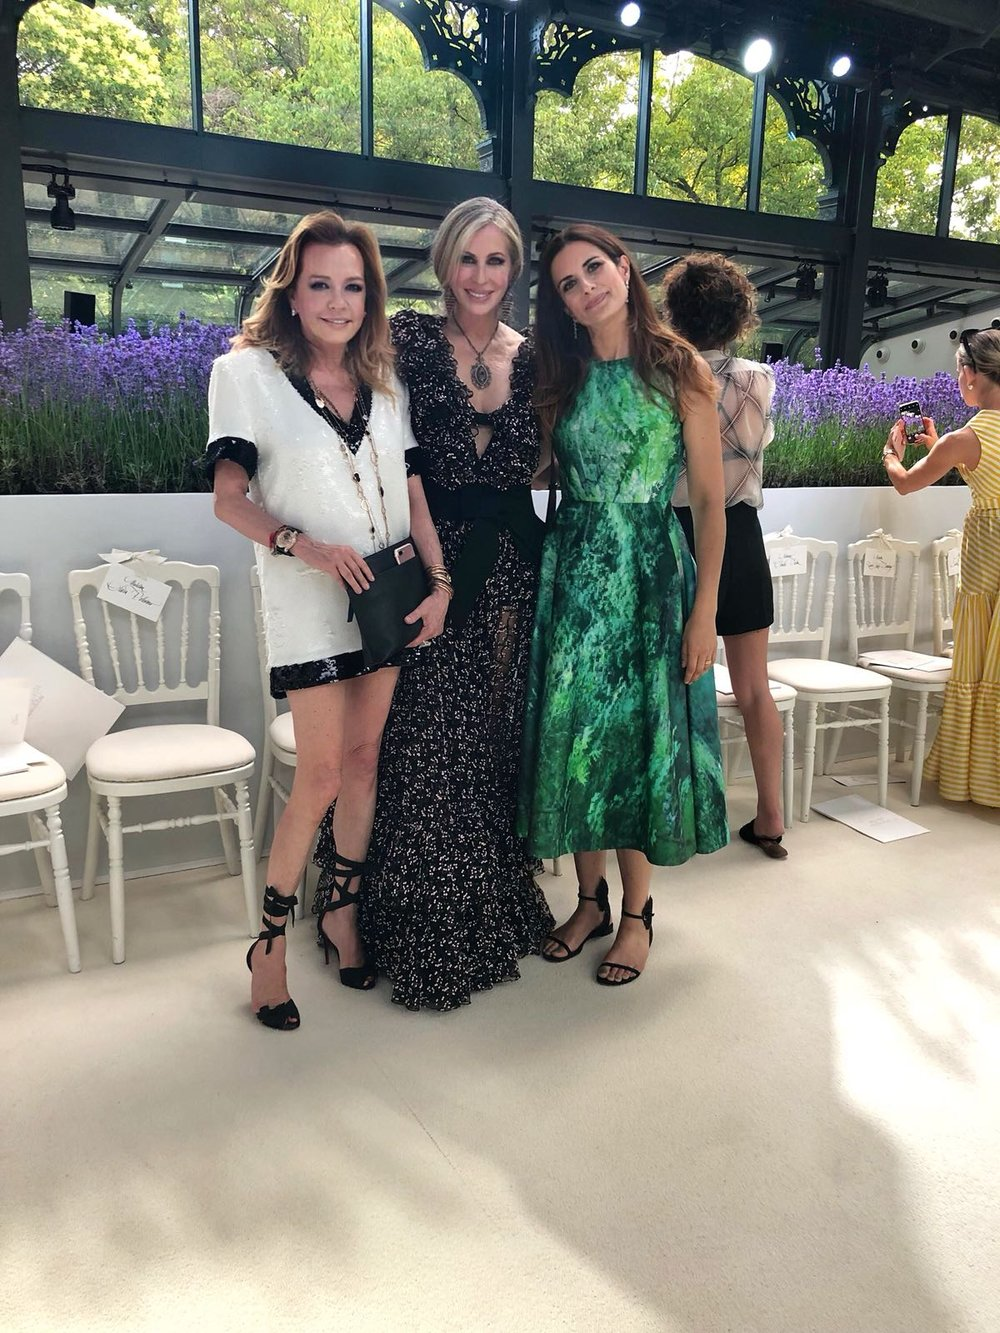 L-R: Co-President of Chopard Caroline Scheufele, Carmen, and Livia Firth at Giambattista Valli's couture presentation in Paris.